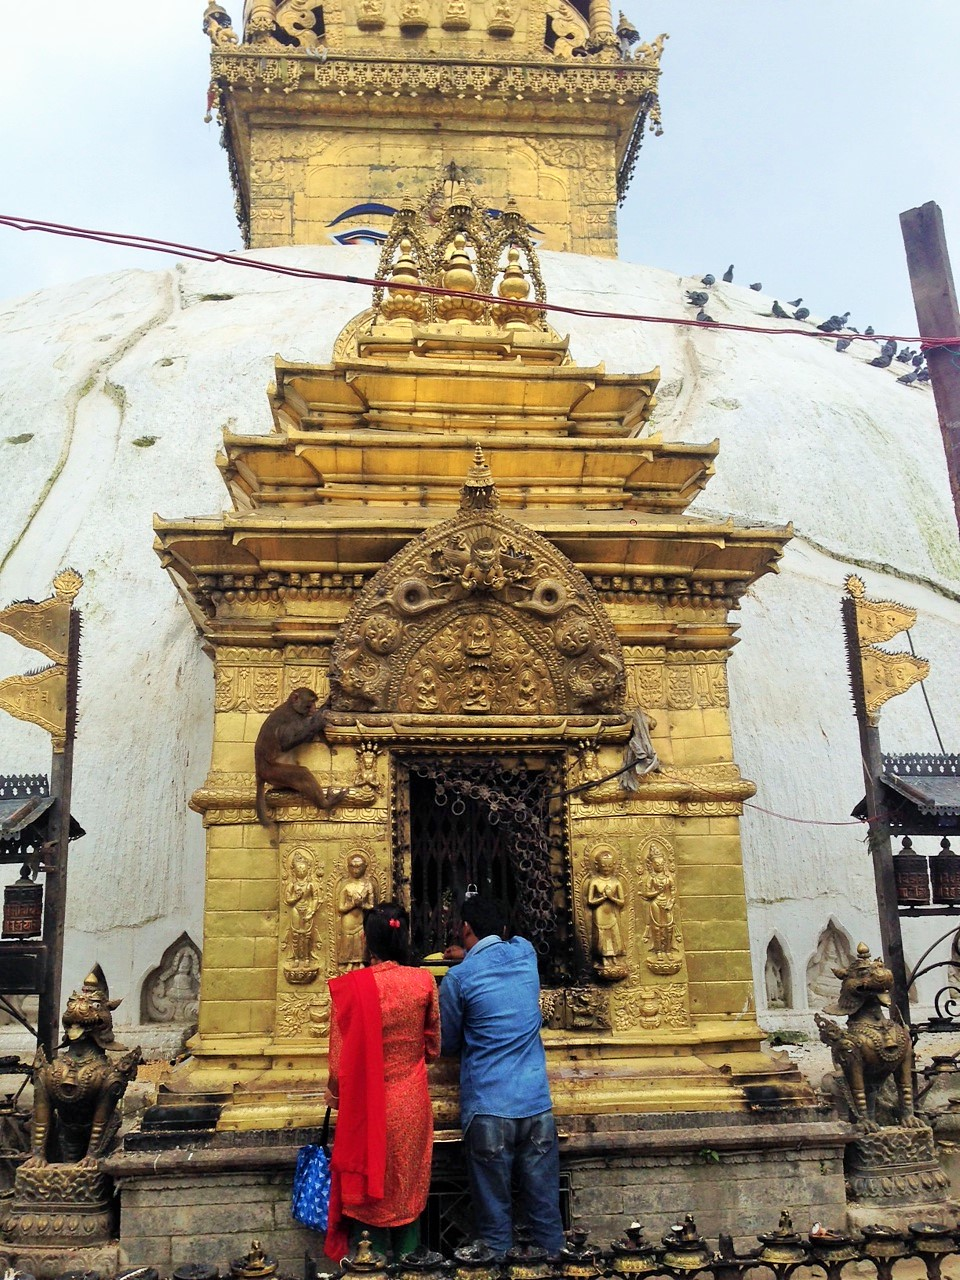 The Monkey Temple at Swayambhunath